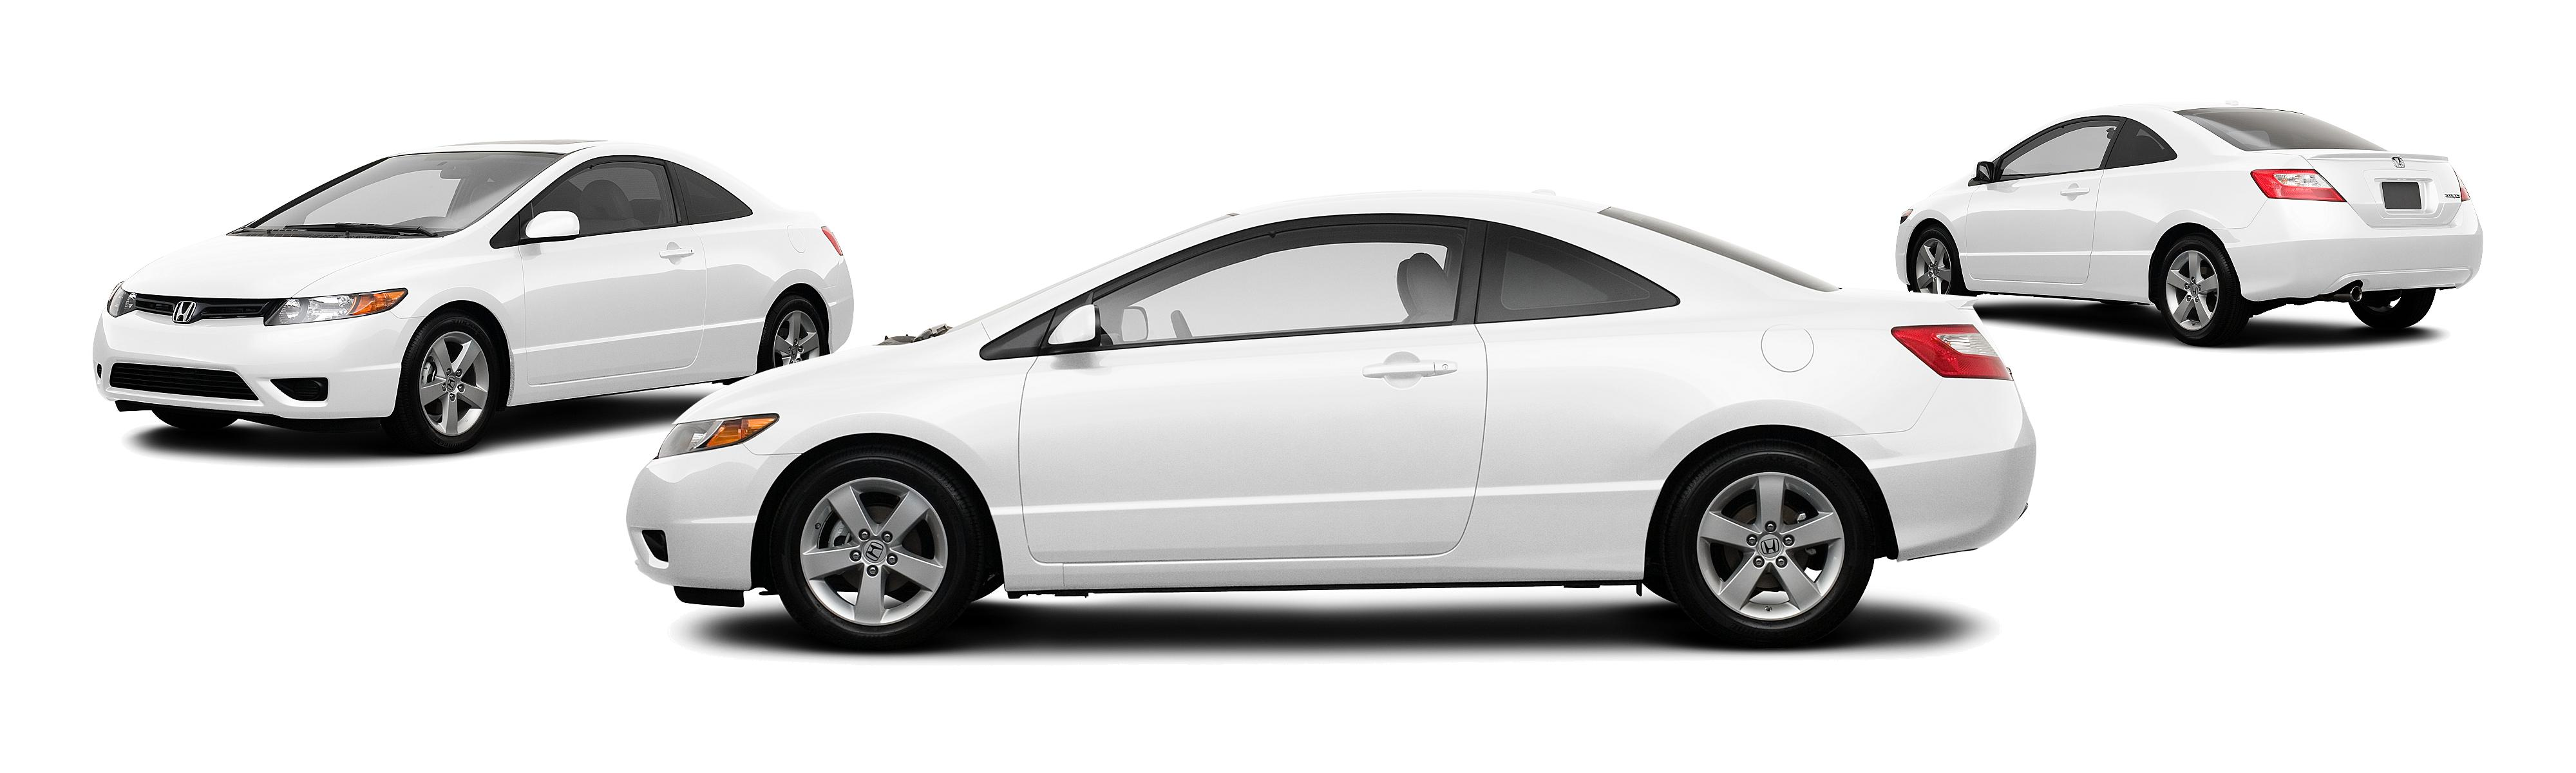 2008 Honda Civic EX L 2dr Coupe 5A Research GrooveCar